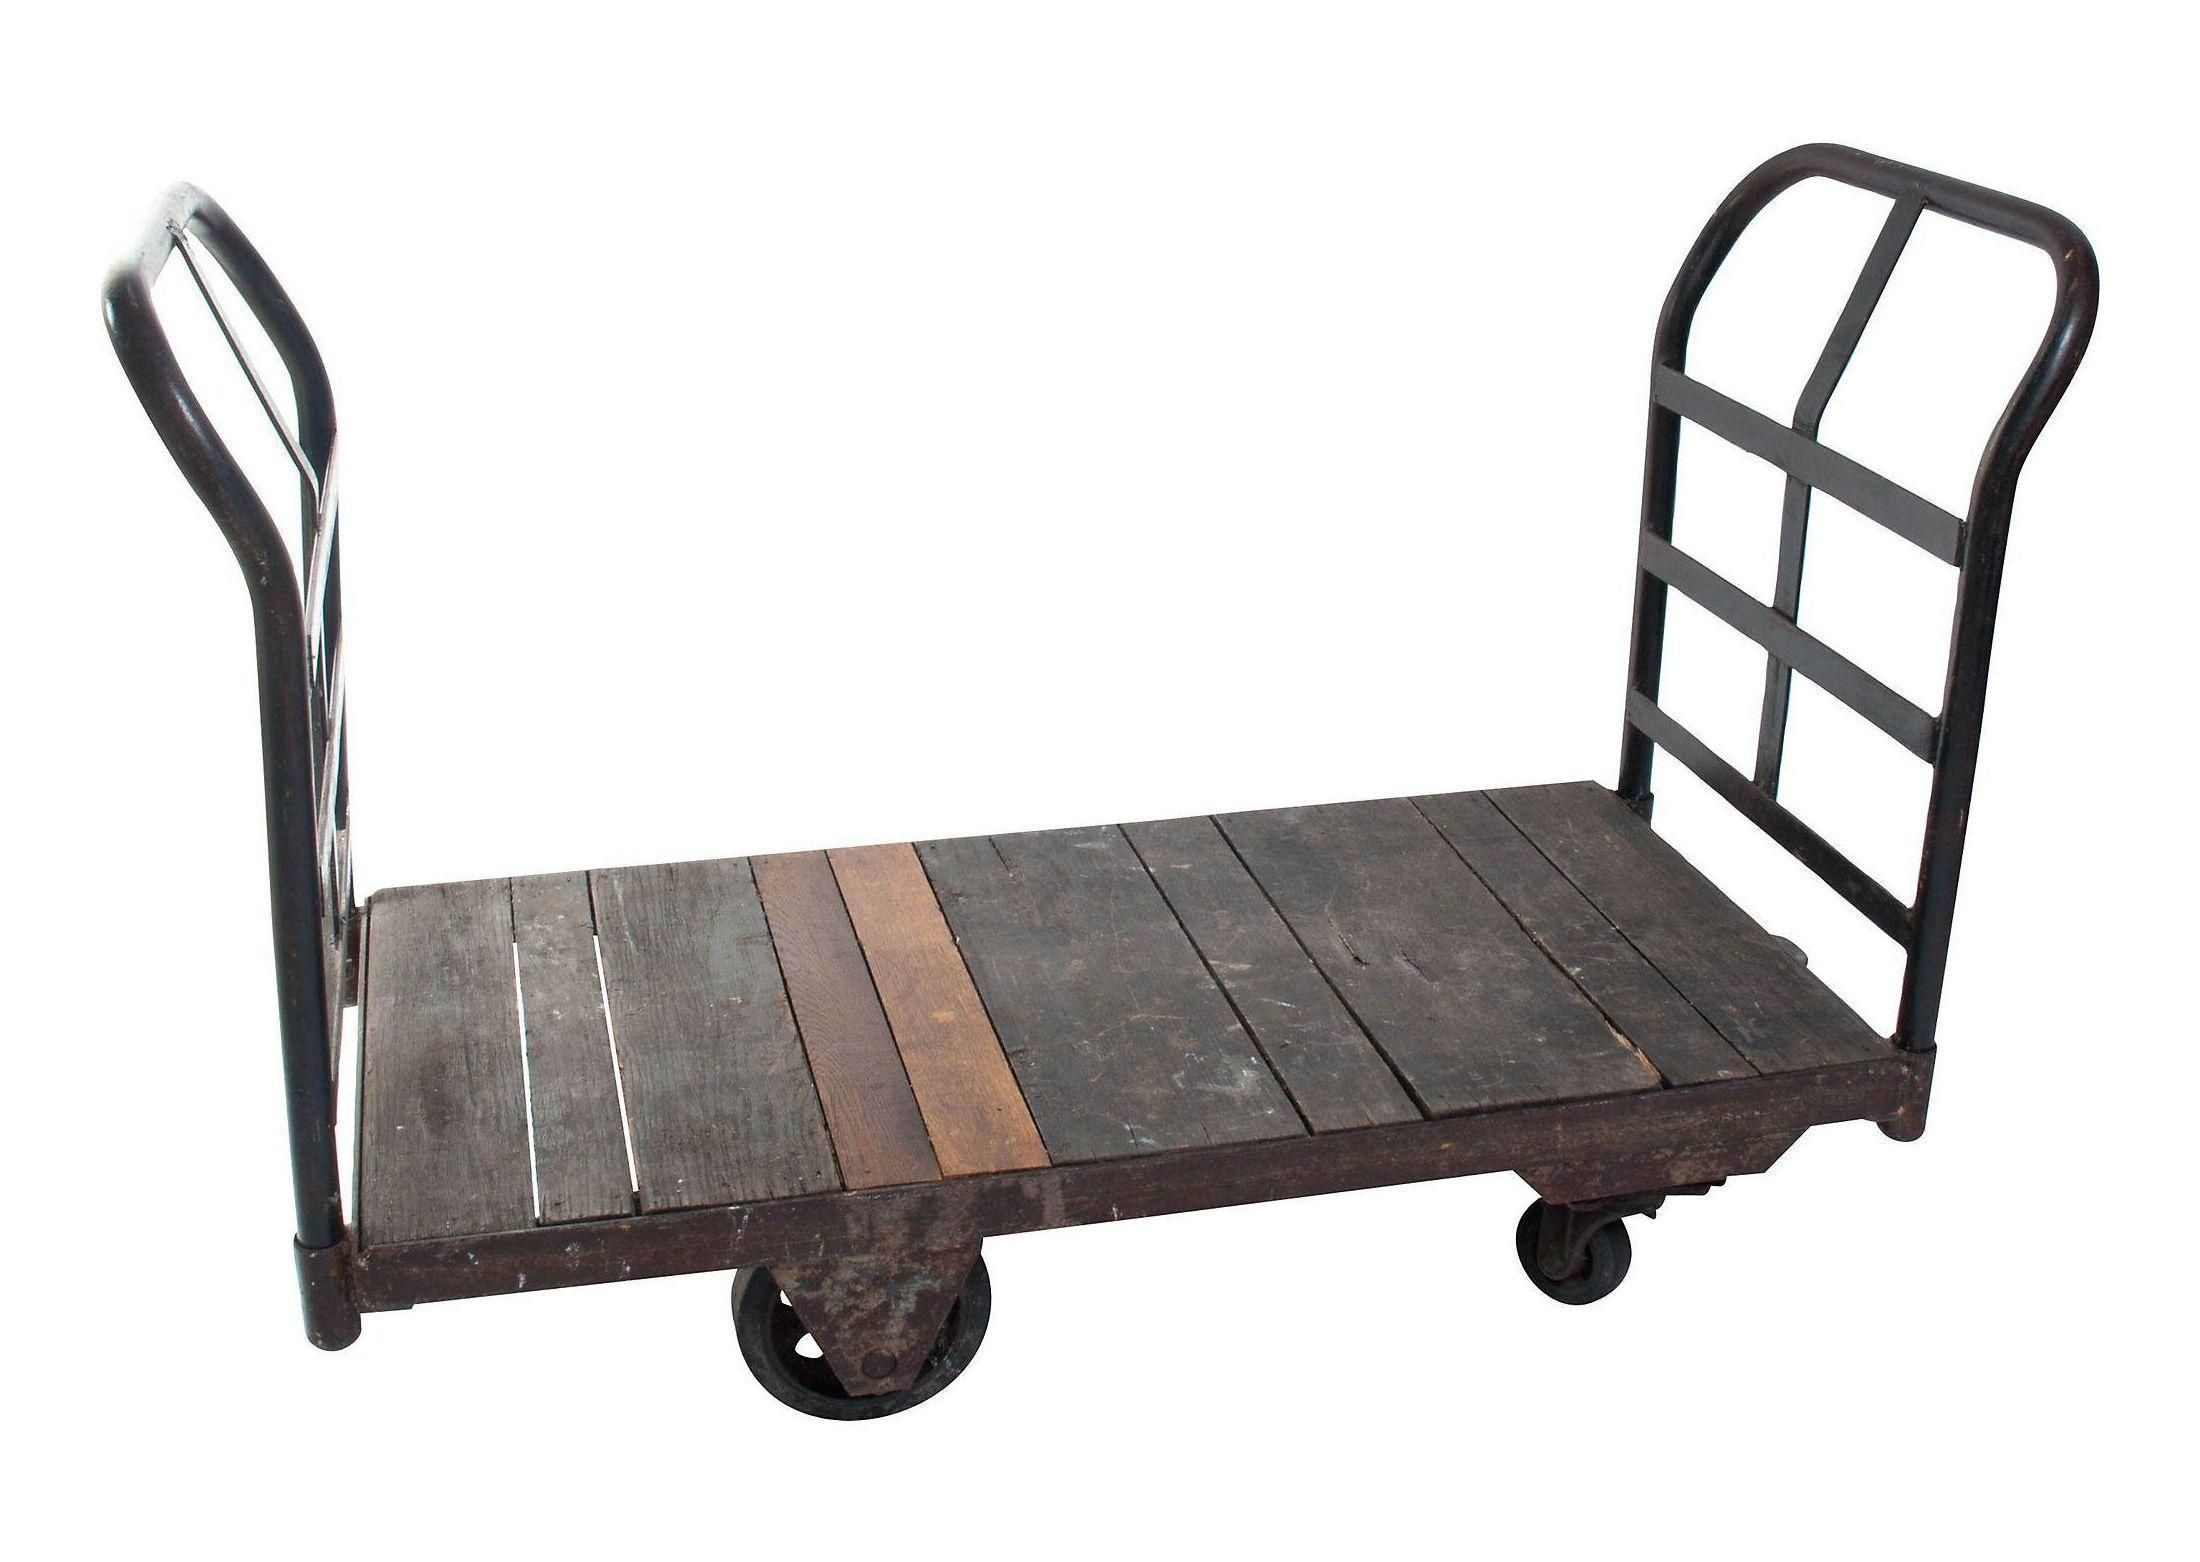 Antique industrial cargo cart unique coffee table industrial metal industrial cargo cart on caster wheels is perfect for just about anything we picture it stacked with art or fashioned into a unique coffee table geotapseo Gallery